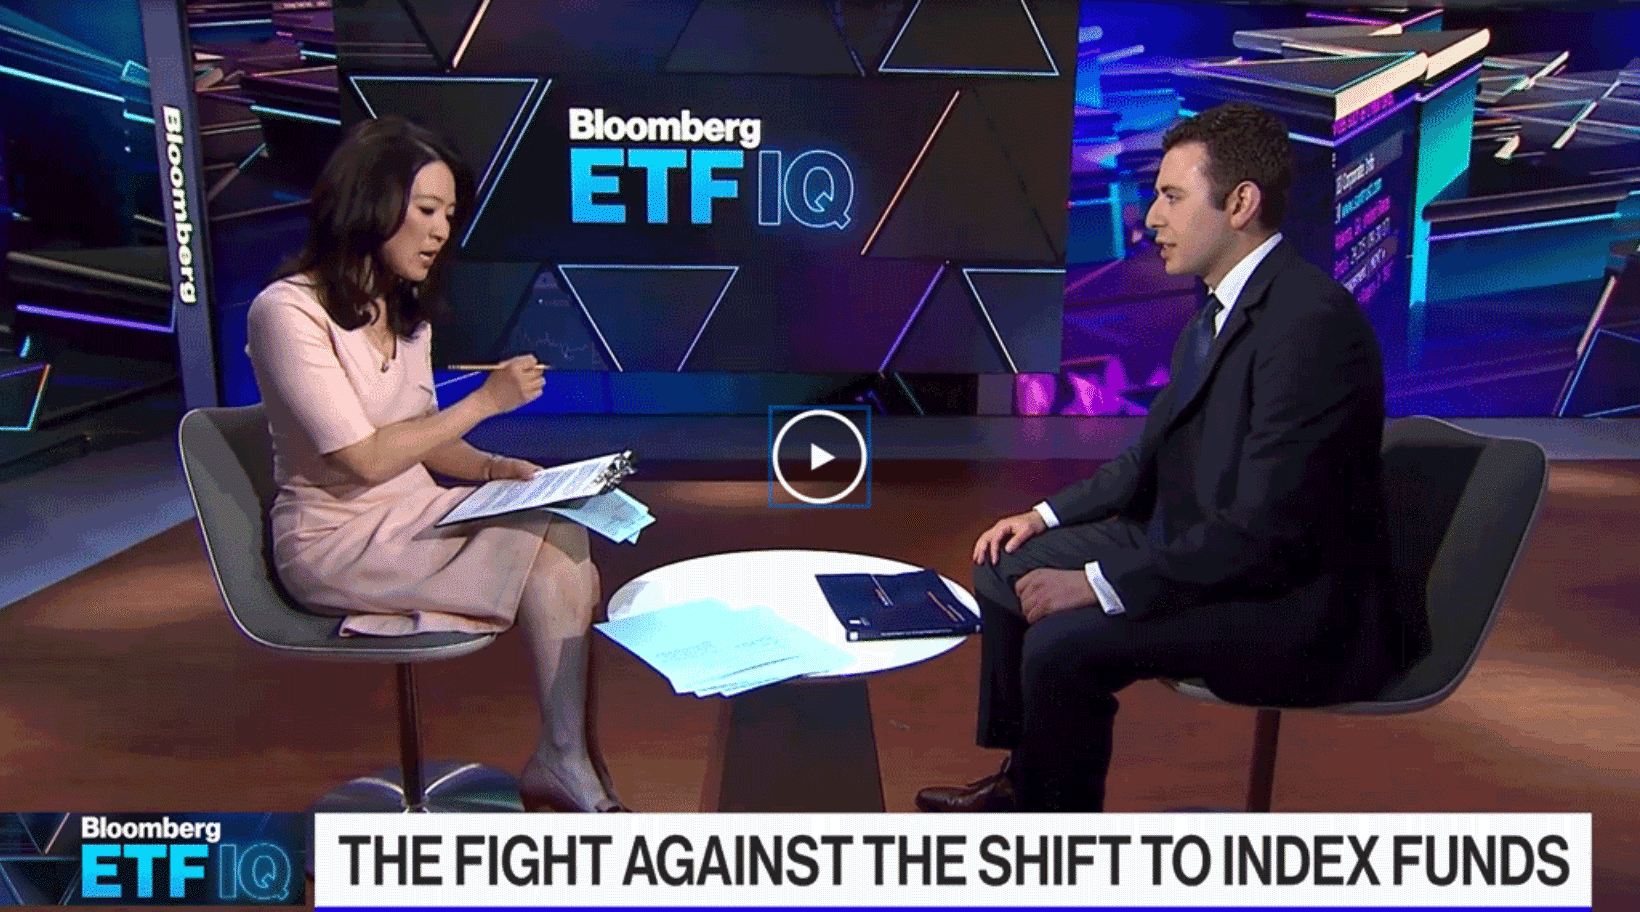 The Fight Against the Shift to Index Funds